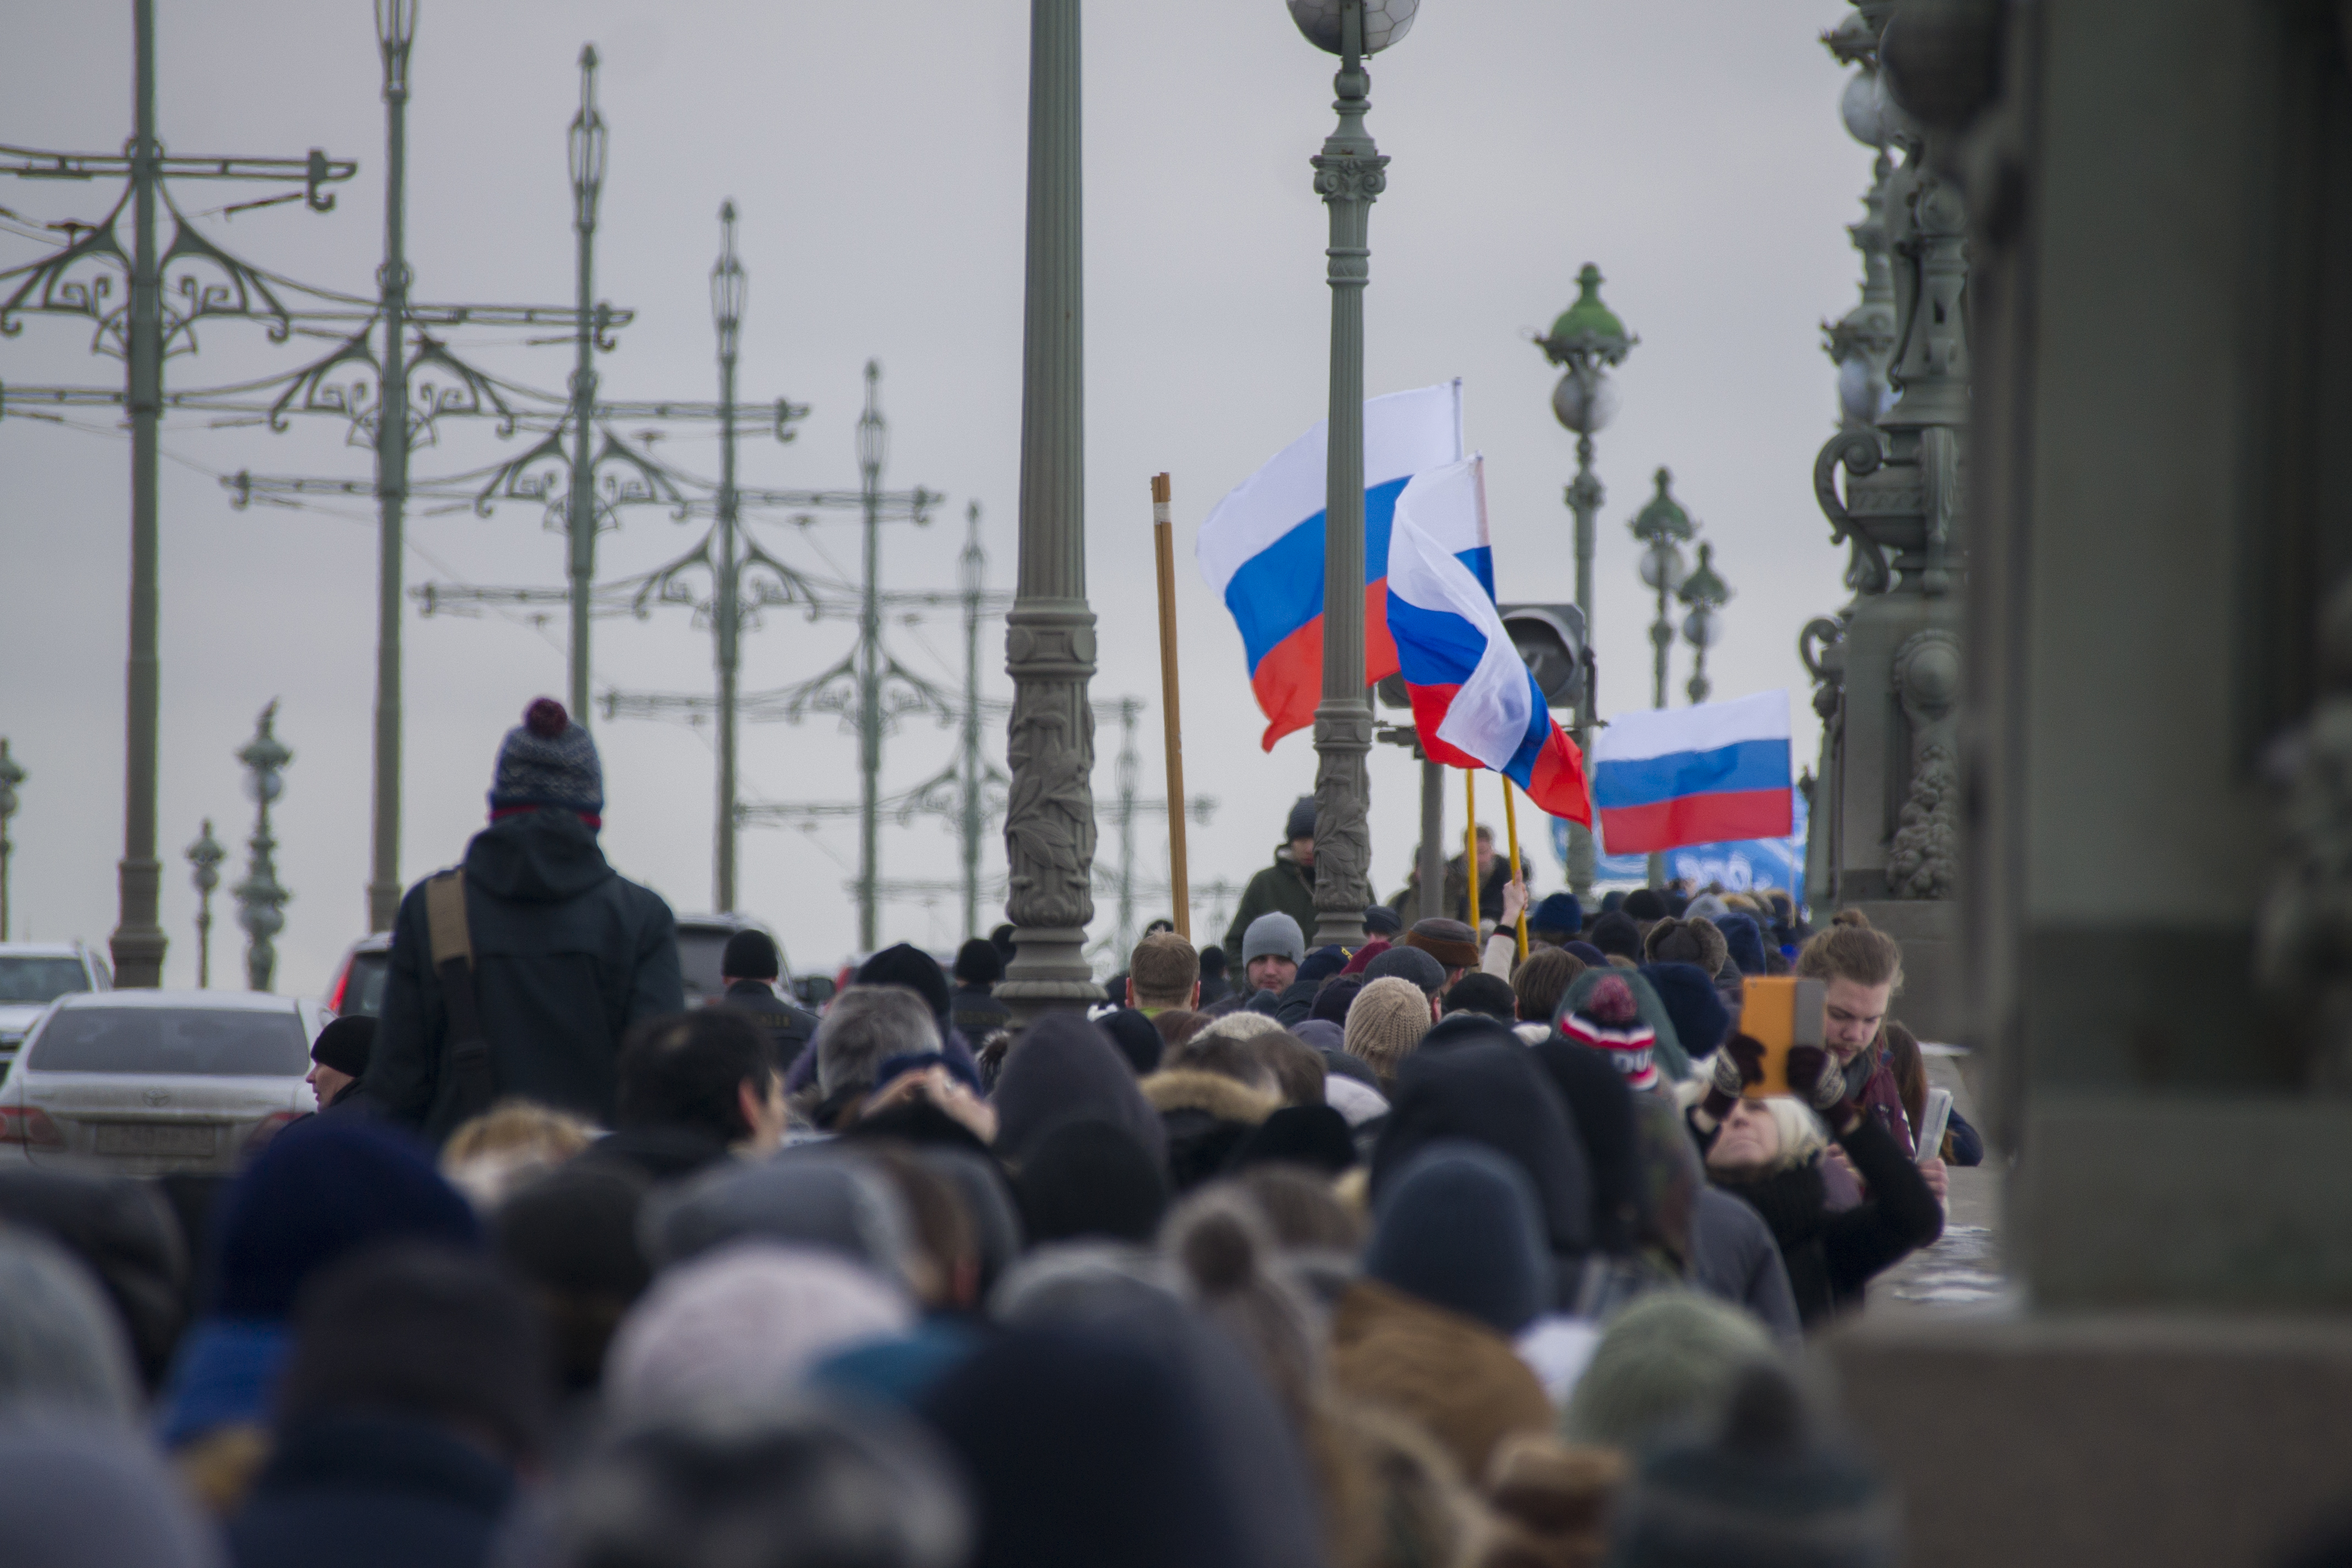 White Nationalism in the United States and Russia: Transnational Ties, Domestic Impact